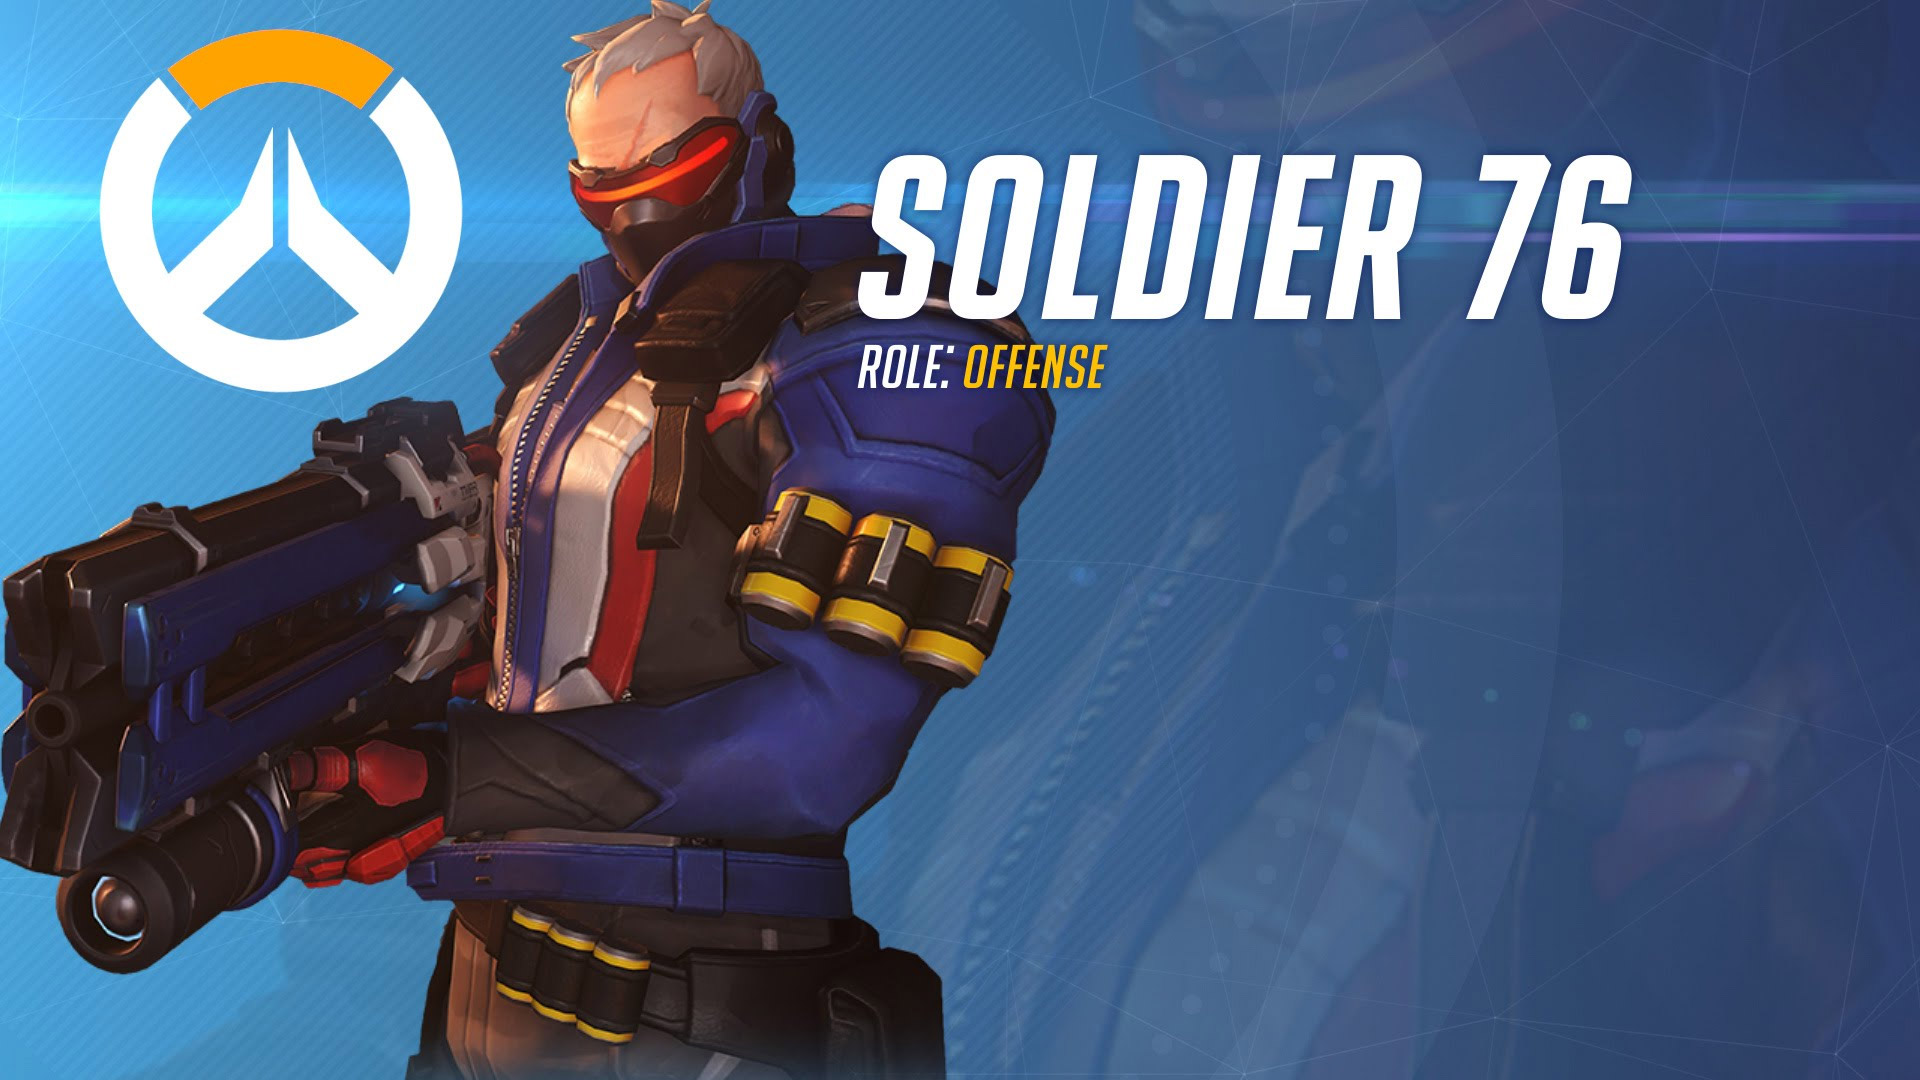 News: Overwatch's final animated short shows off Soldier 76